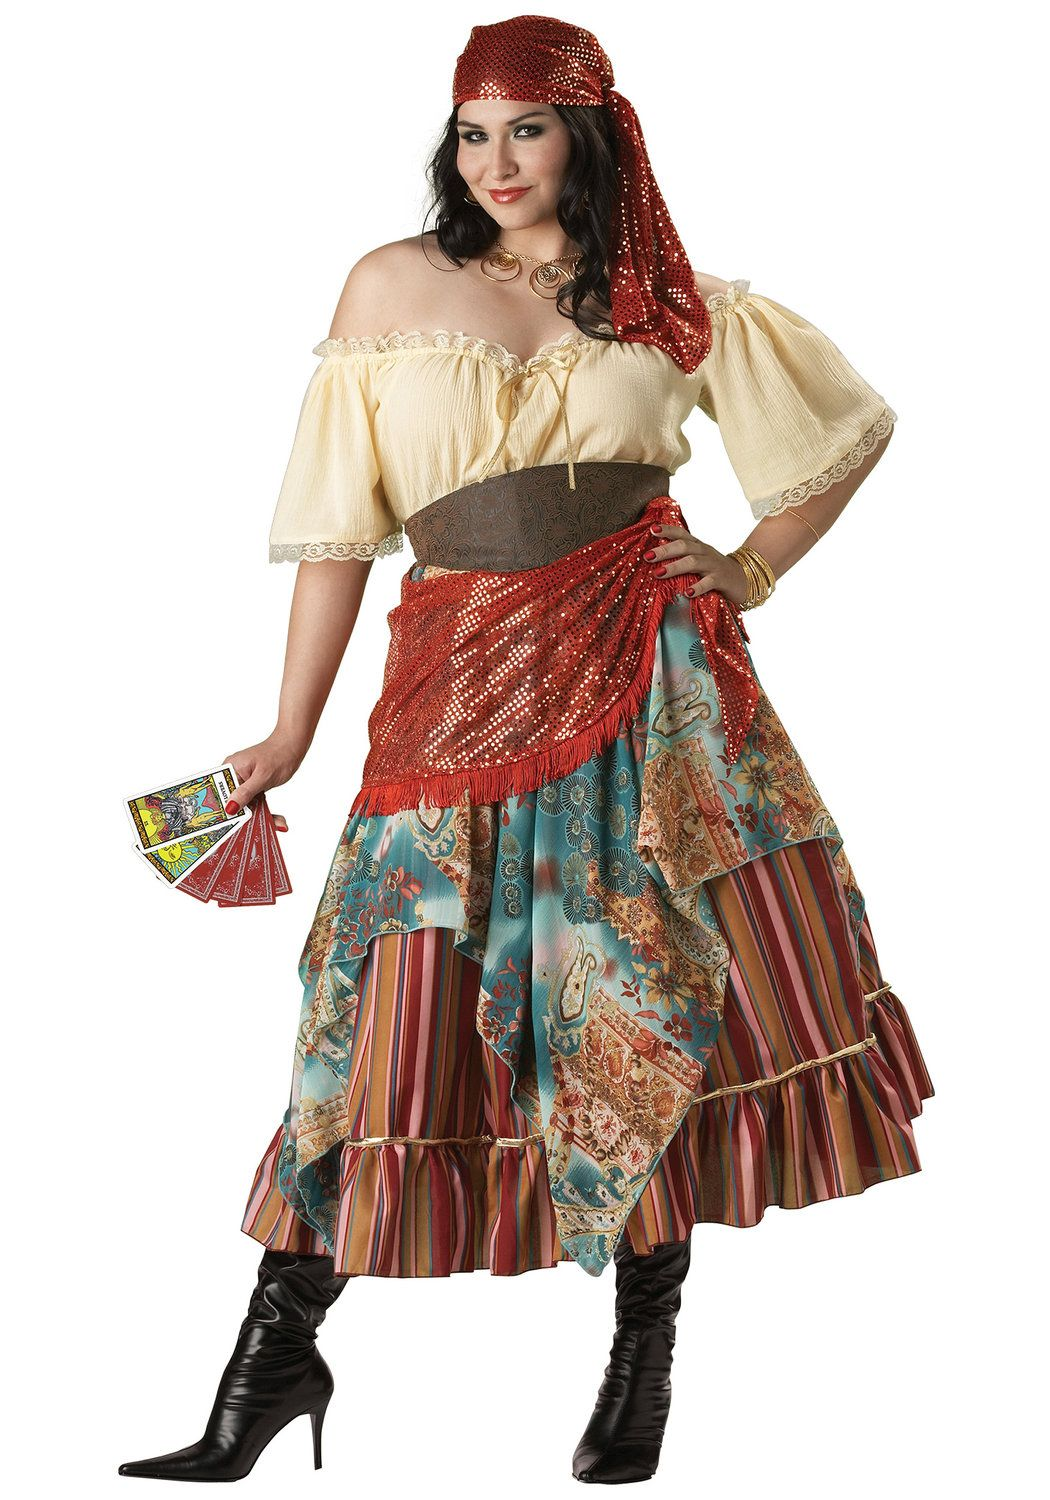 Teller Plus Size Gypsy Costume Renaissance Costumes - Mr. Costumes b7fc3a899ff4